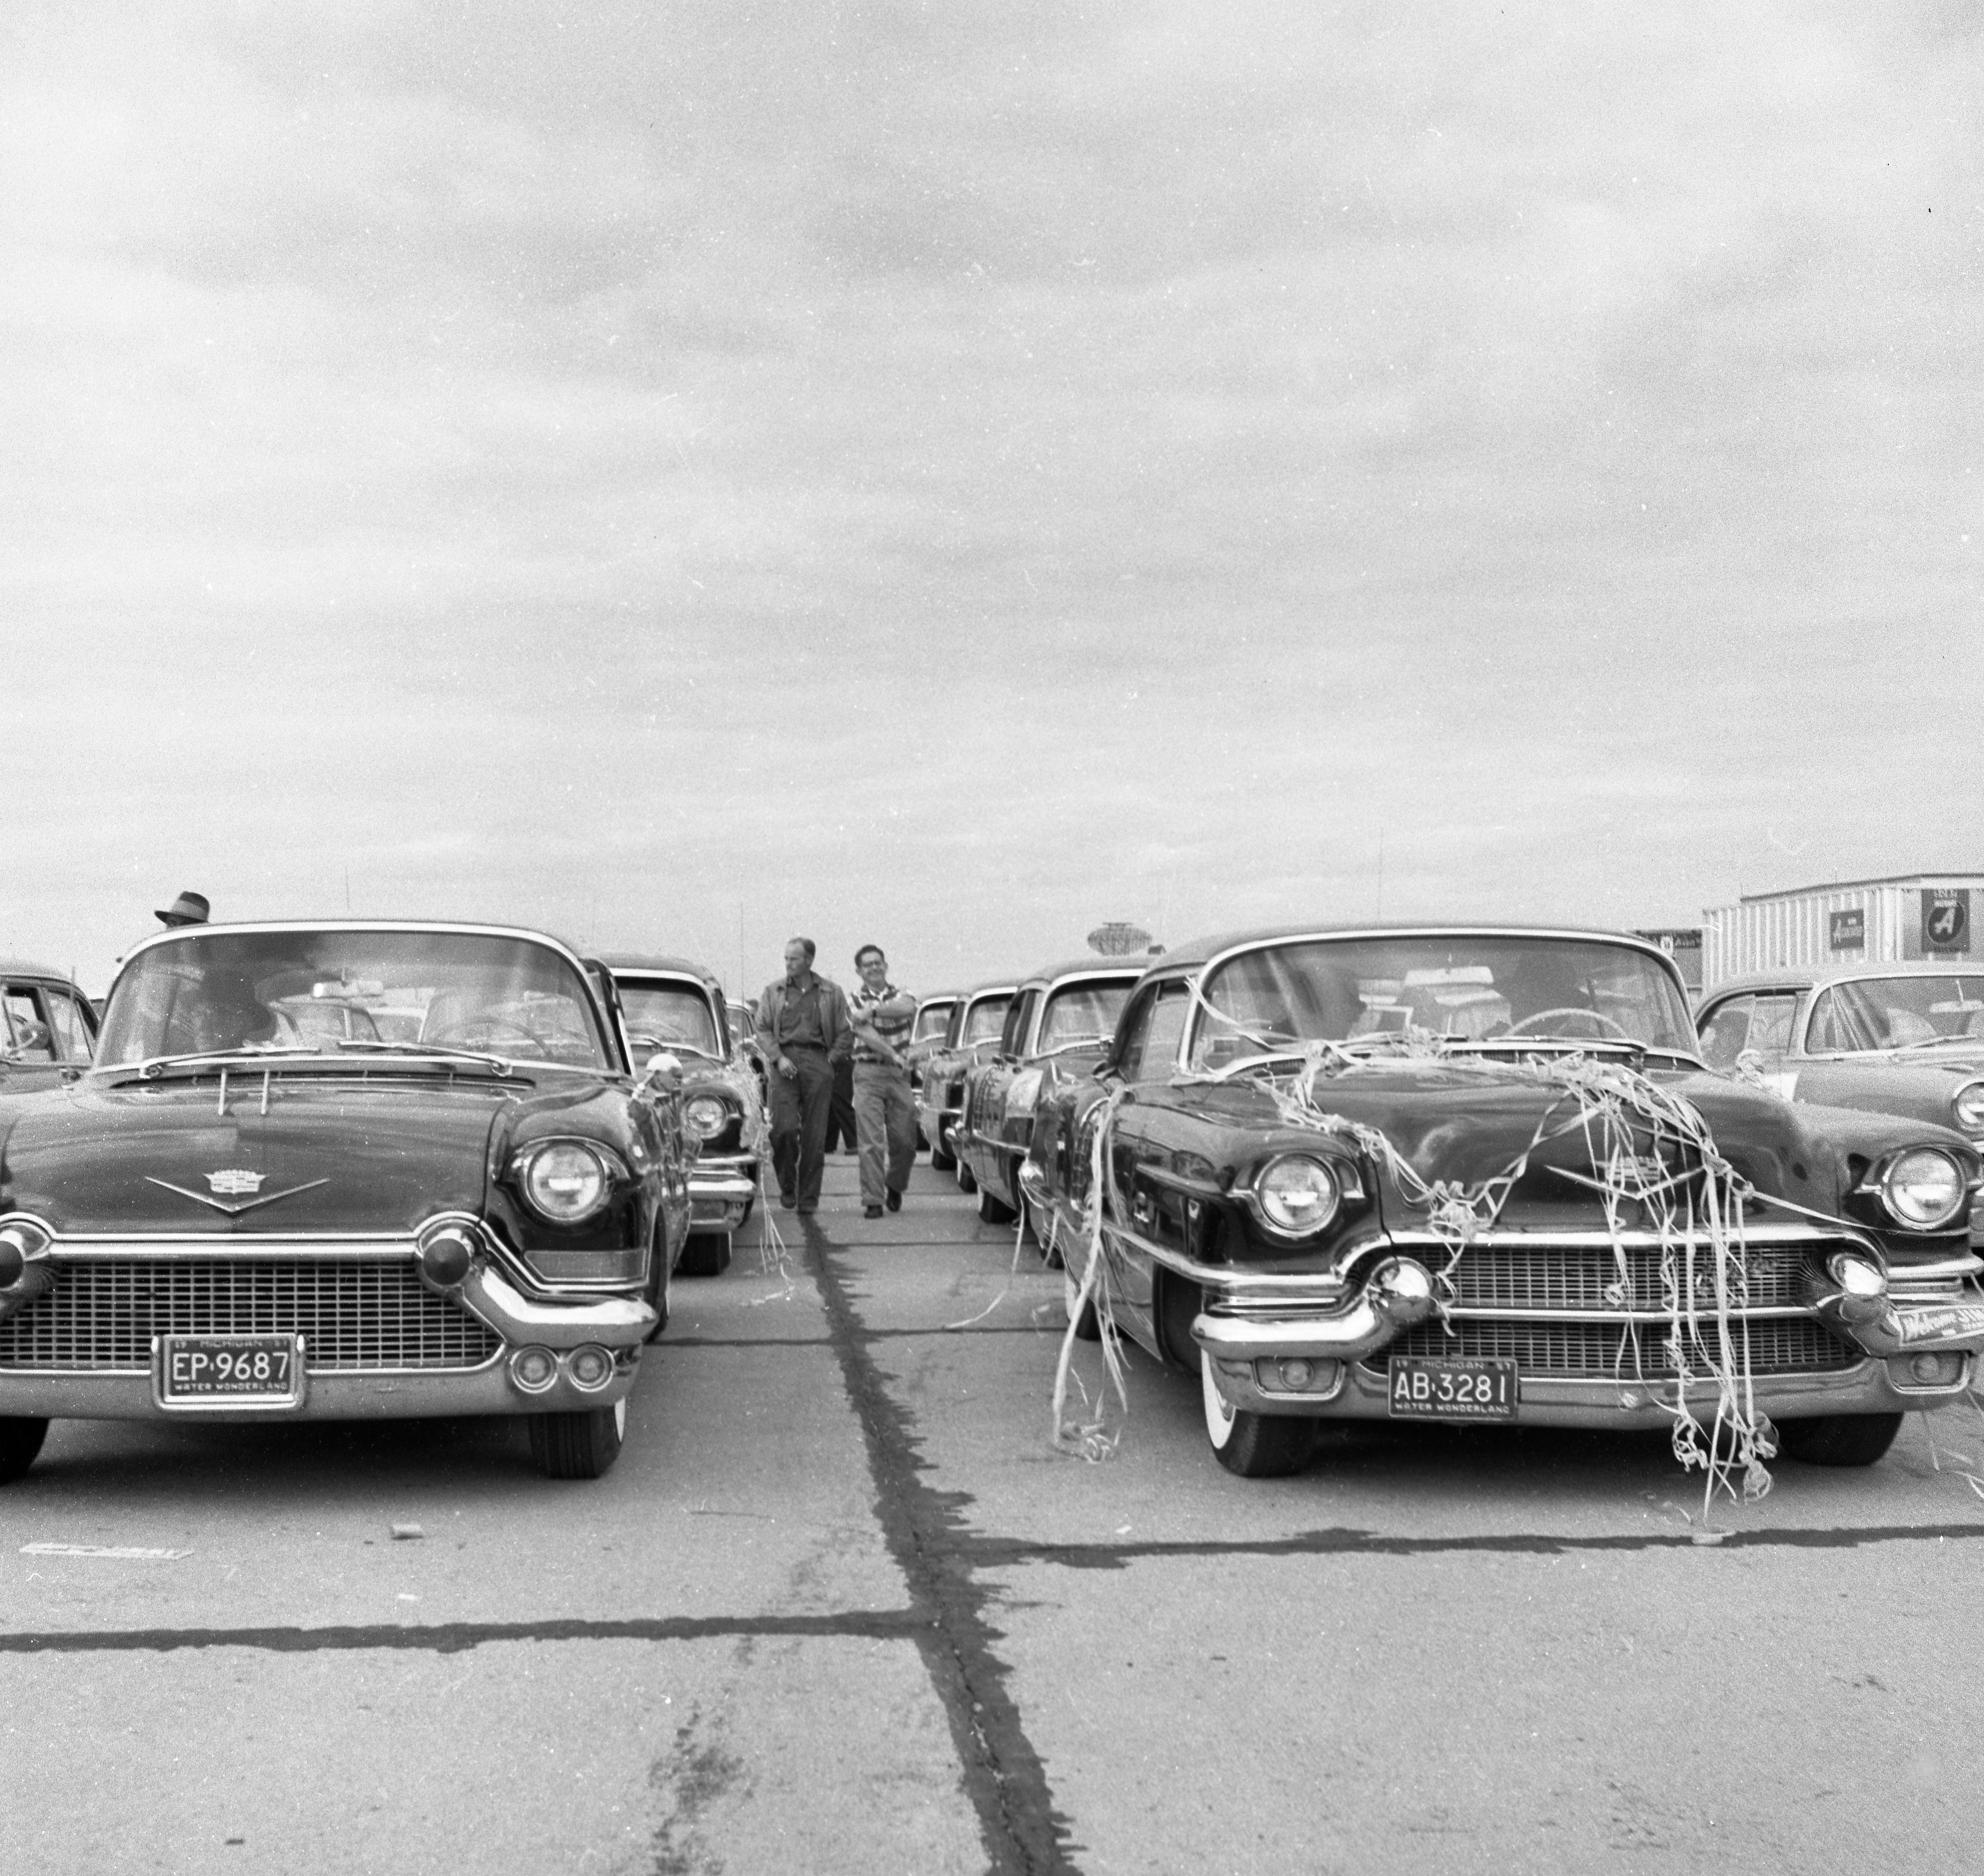 Cars Fill Willow Run Airport Parking Lot at Event For Newly Elected National Teamsters Union President Jimmy Hoffa, October 1957 image